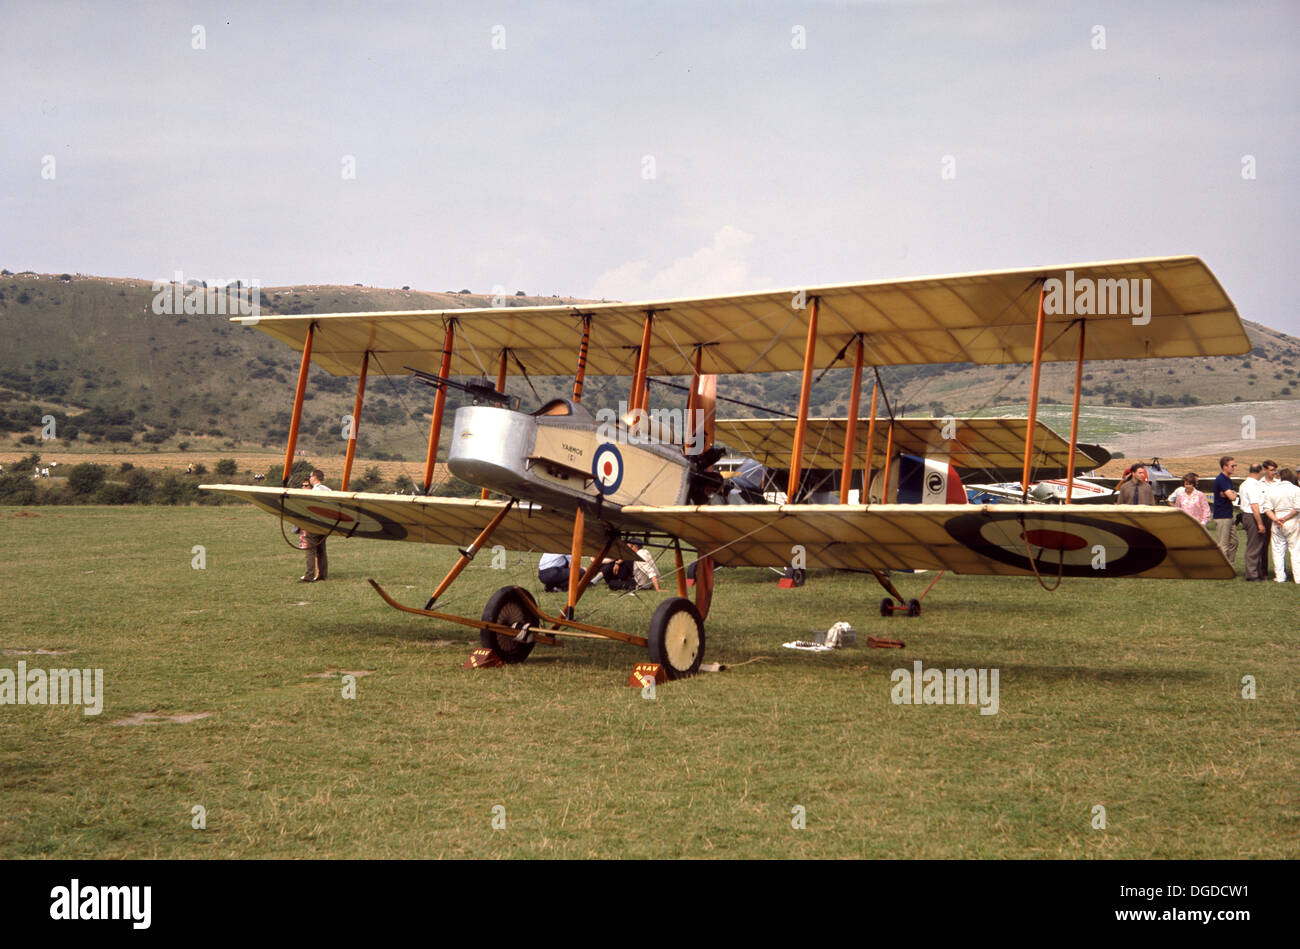 1970s, picture of a restored WW1 RAF fixed-wing biplane stationary outside on a grass field, England, Uk, showing Stock Photo